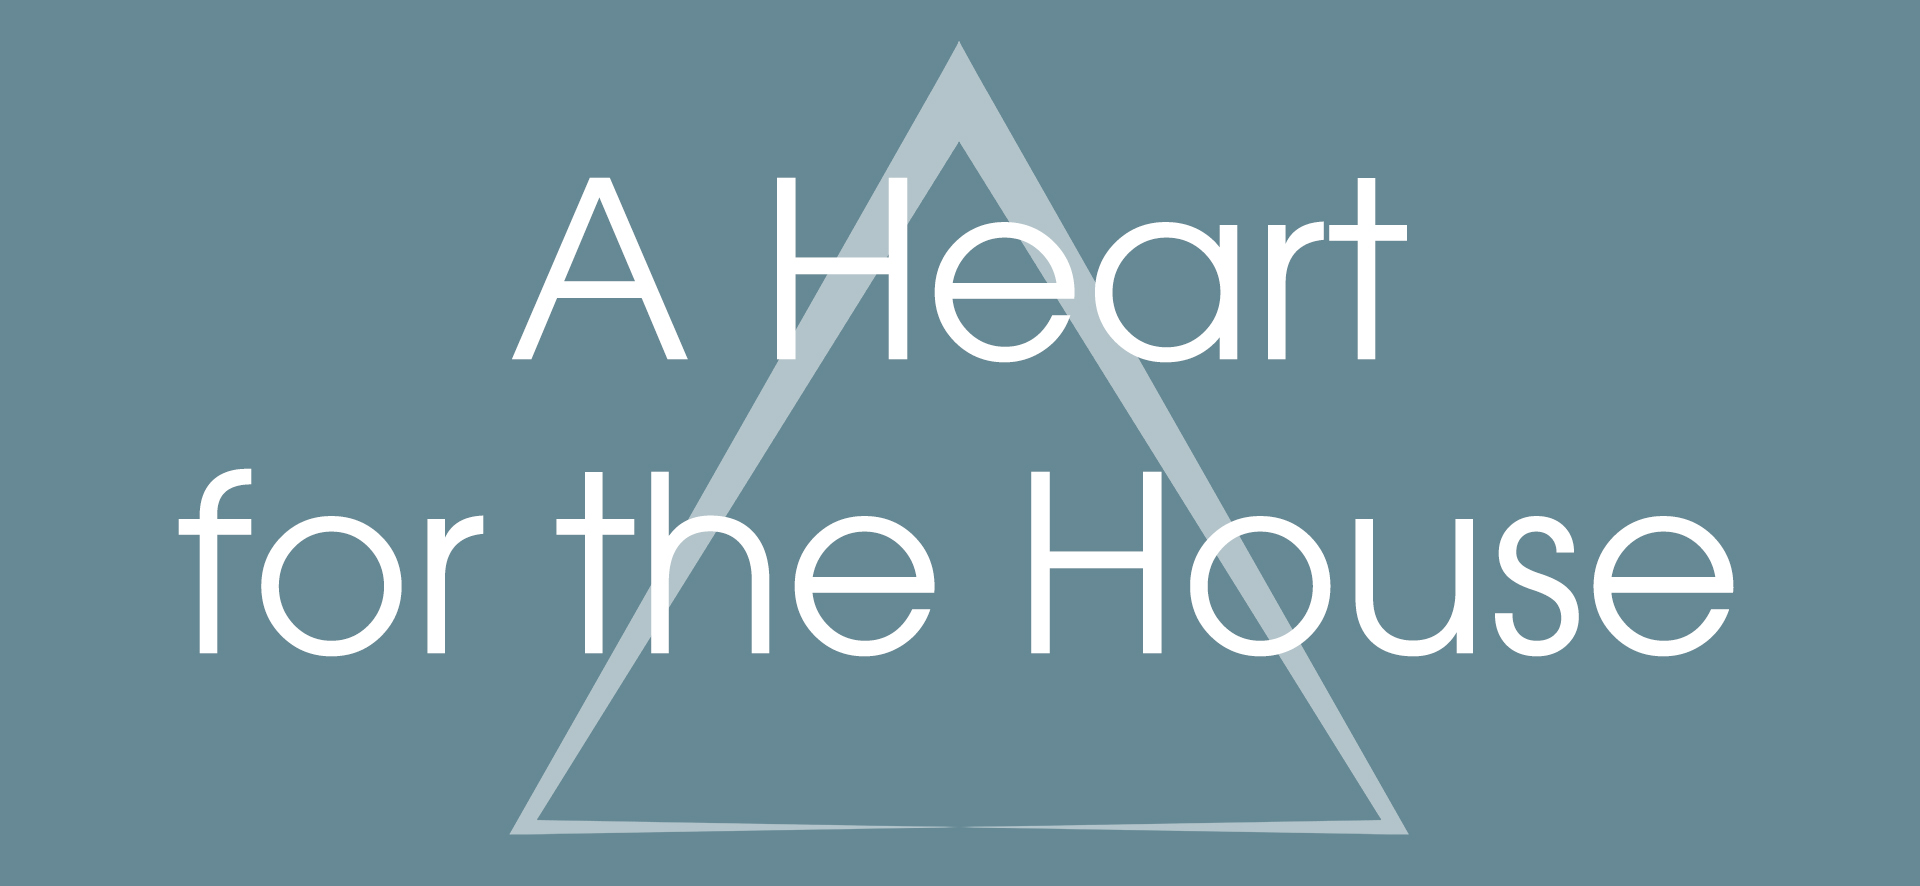 a heart for the house banner.jpg